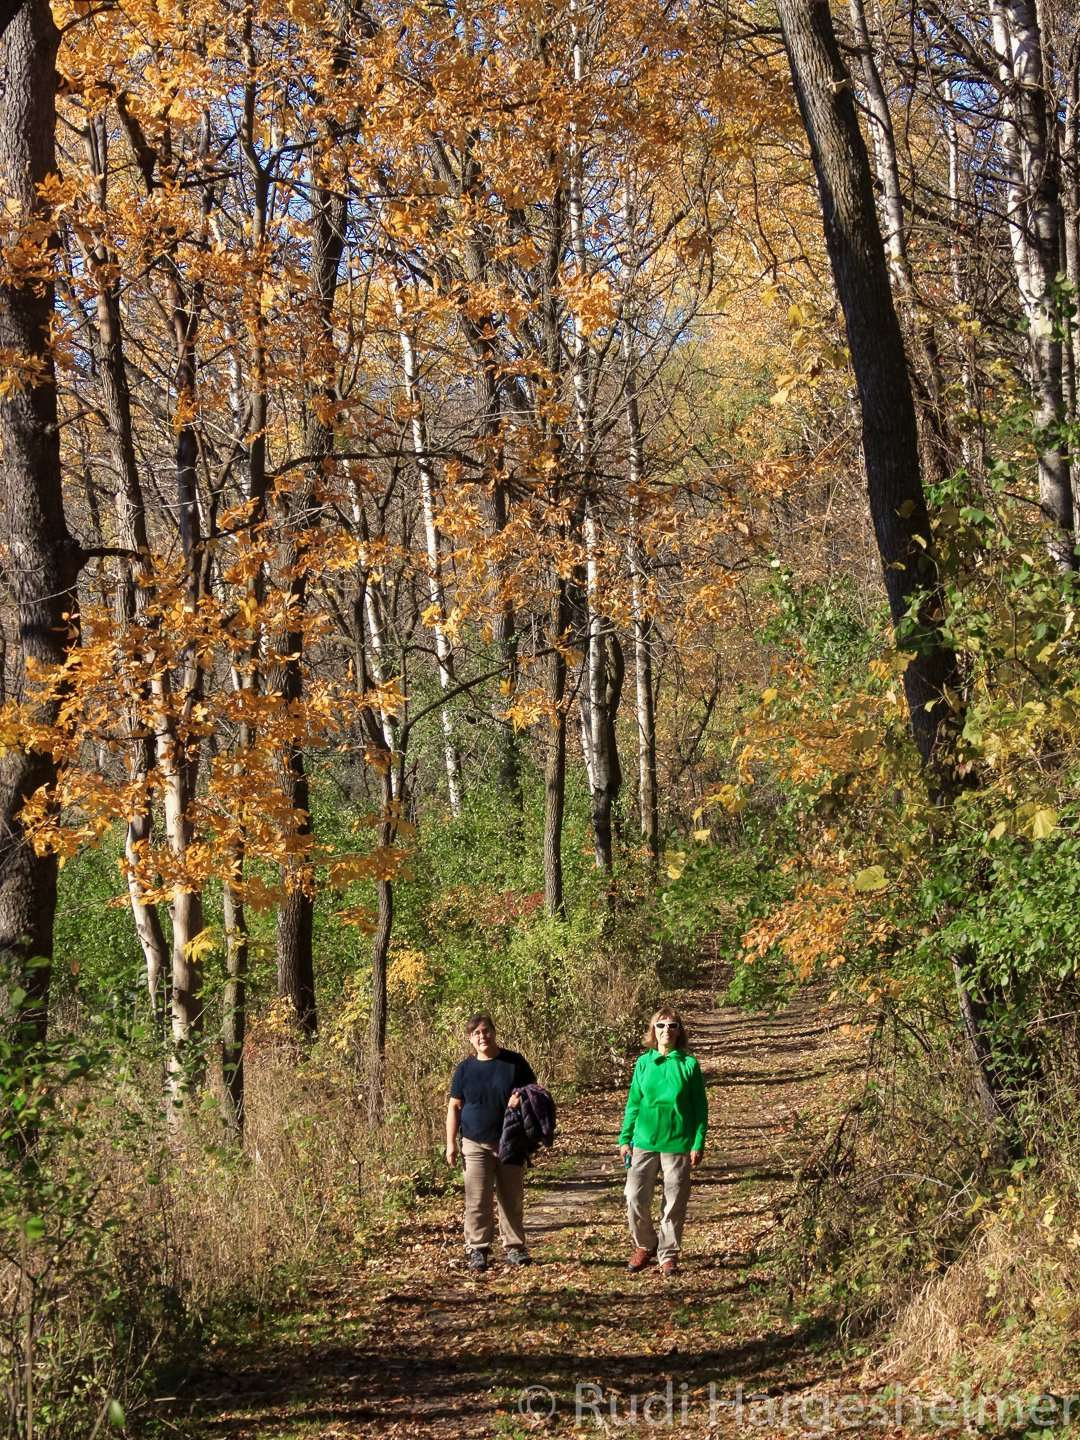 A fall walk at Flandrau State Park